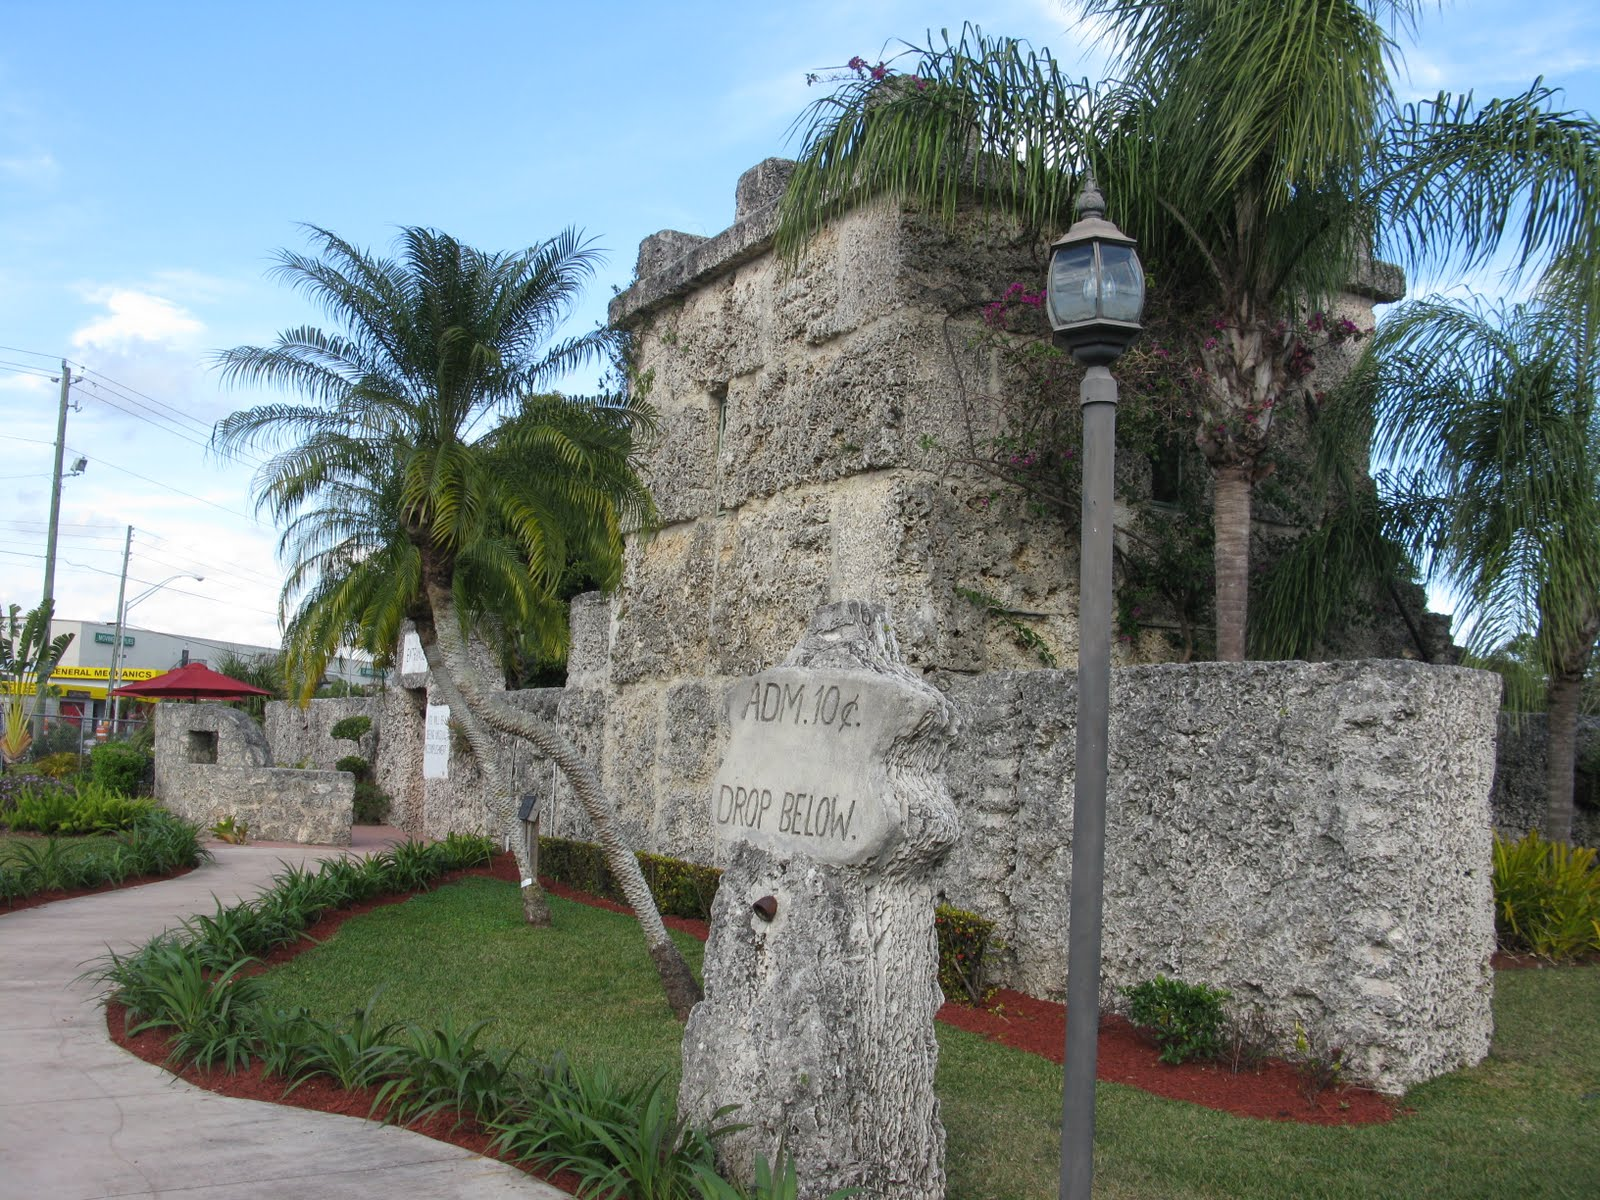 C2C: Homestead Florida - Coral Castle - January 11 2011